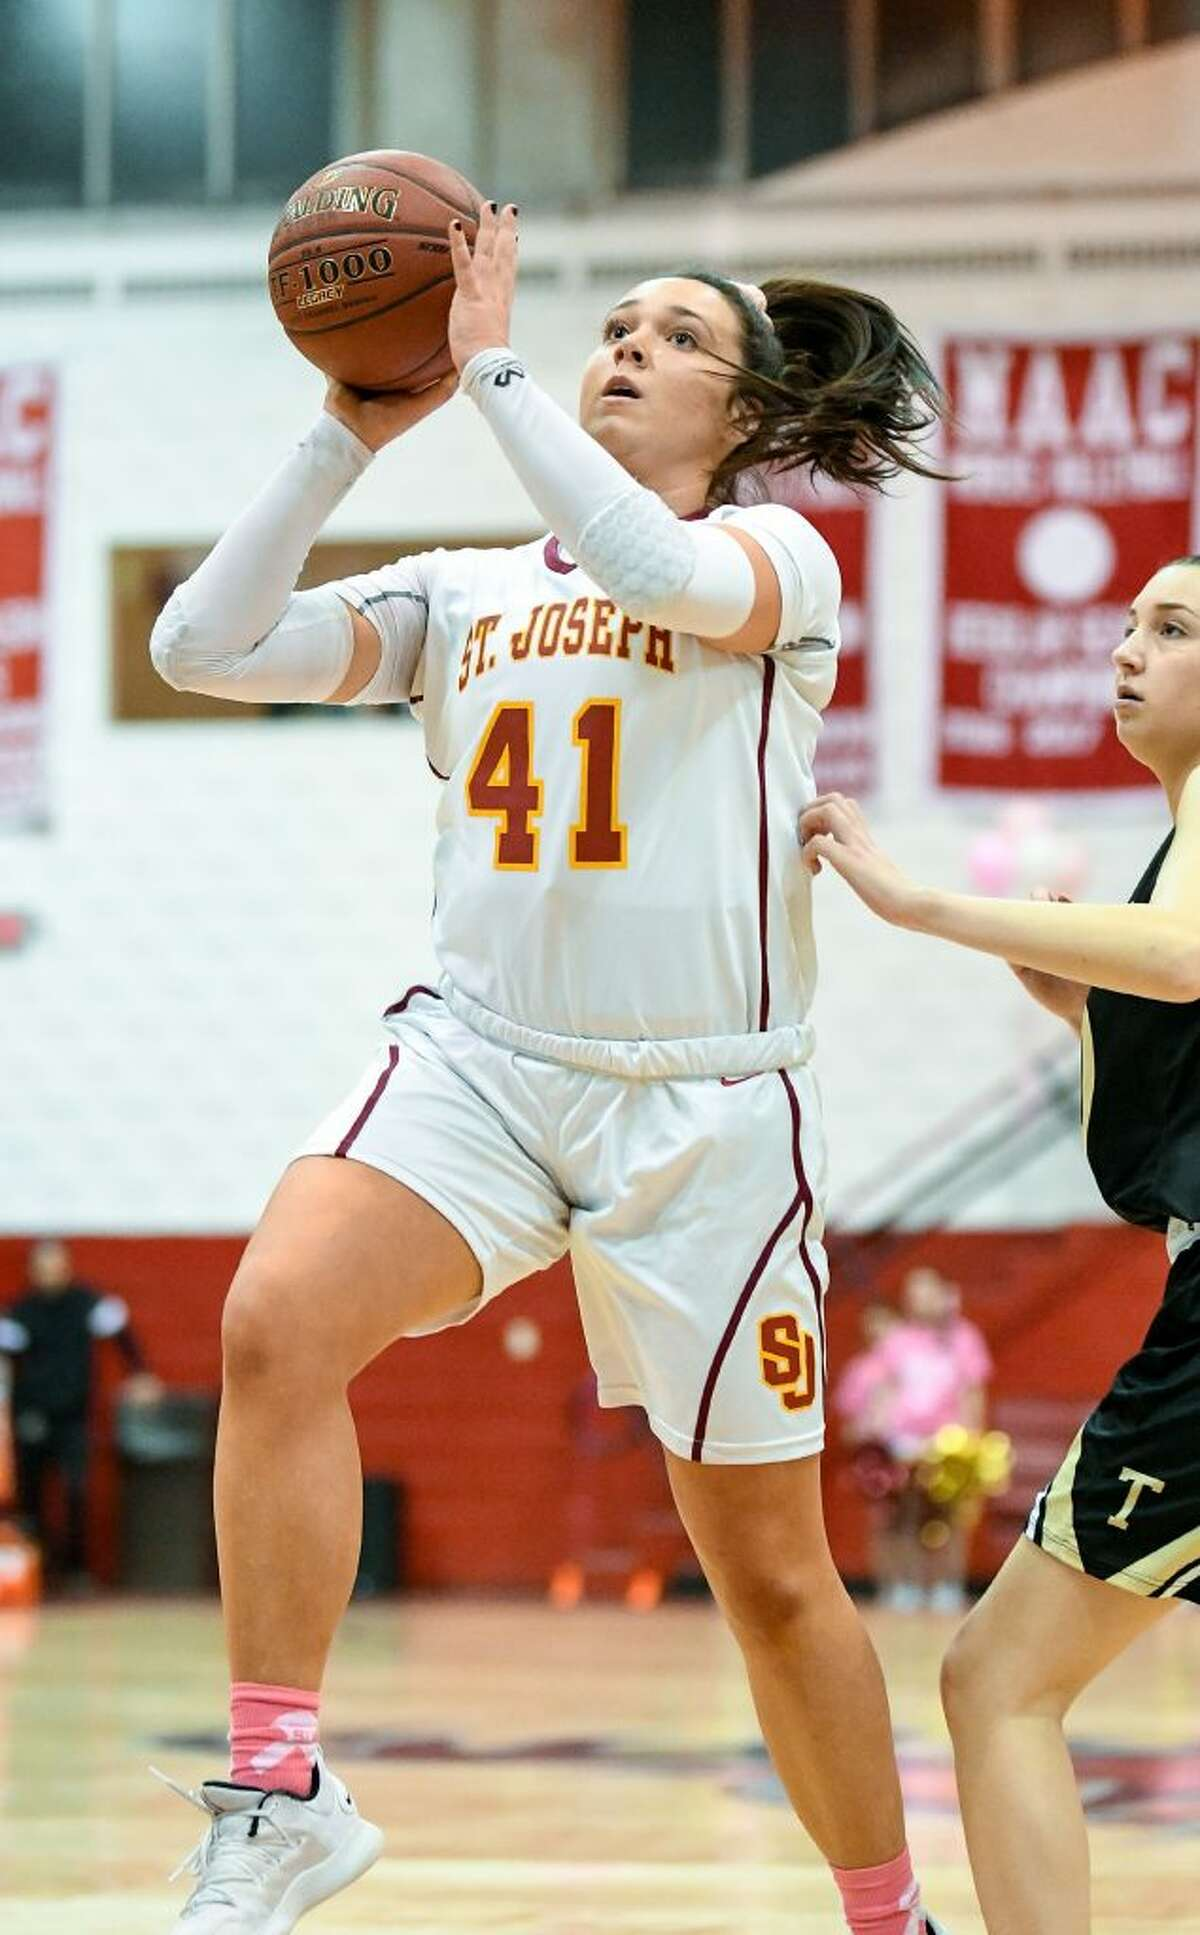 Emma Elrod made a three-pointer to tie the game at 46 with four seconds remaining.